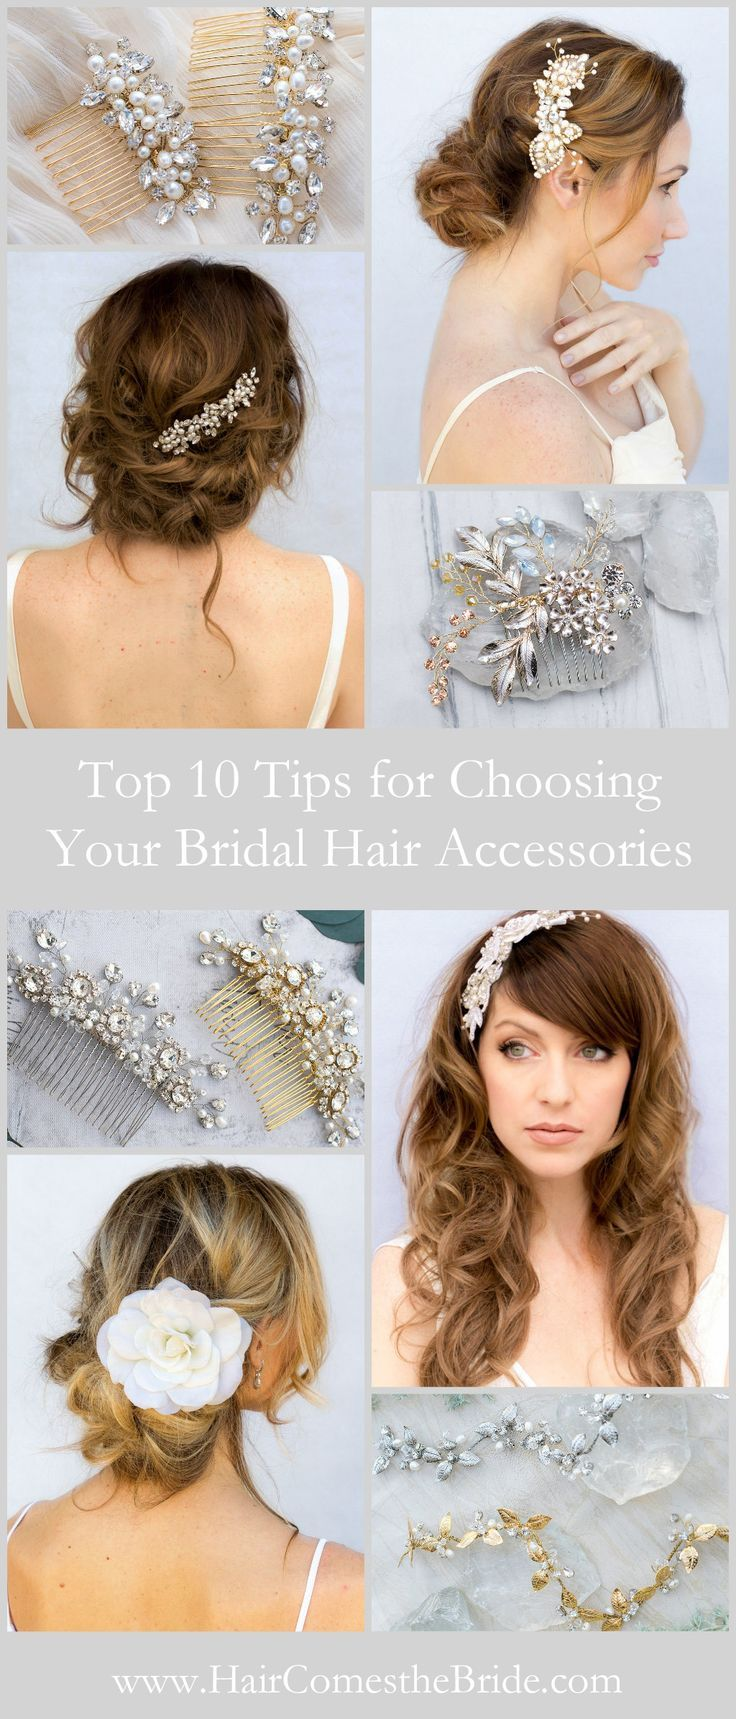 Expert advice for choosing the perfect hair accessories to complete your wedding day look.